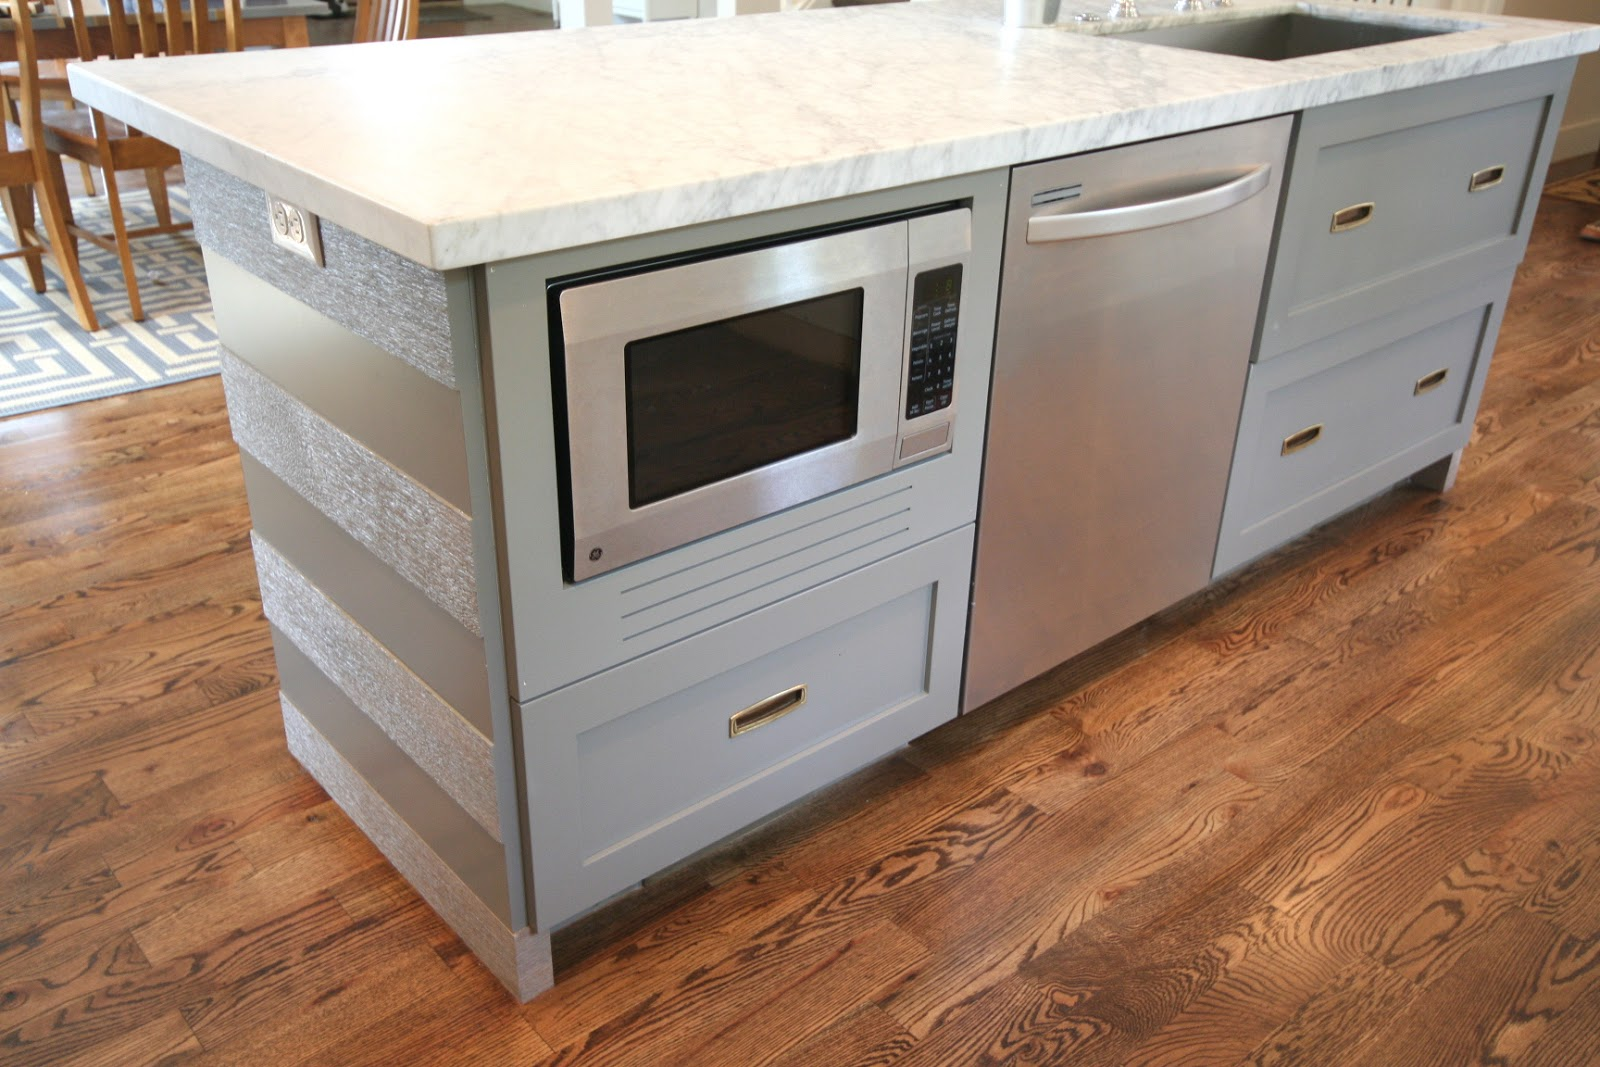 Can Countertop Microwave Be Built In : option to a built-in microwave with a metal trim kit, which can ...